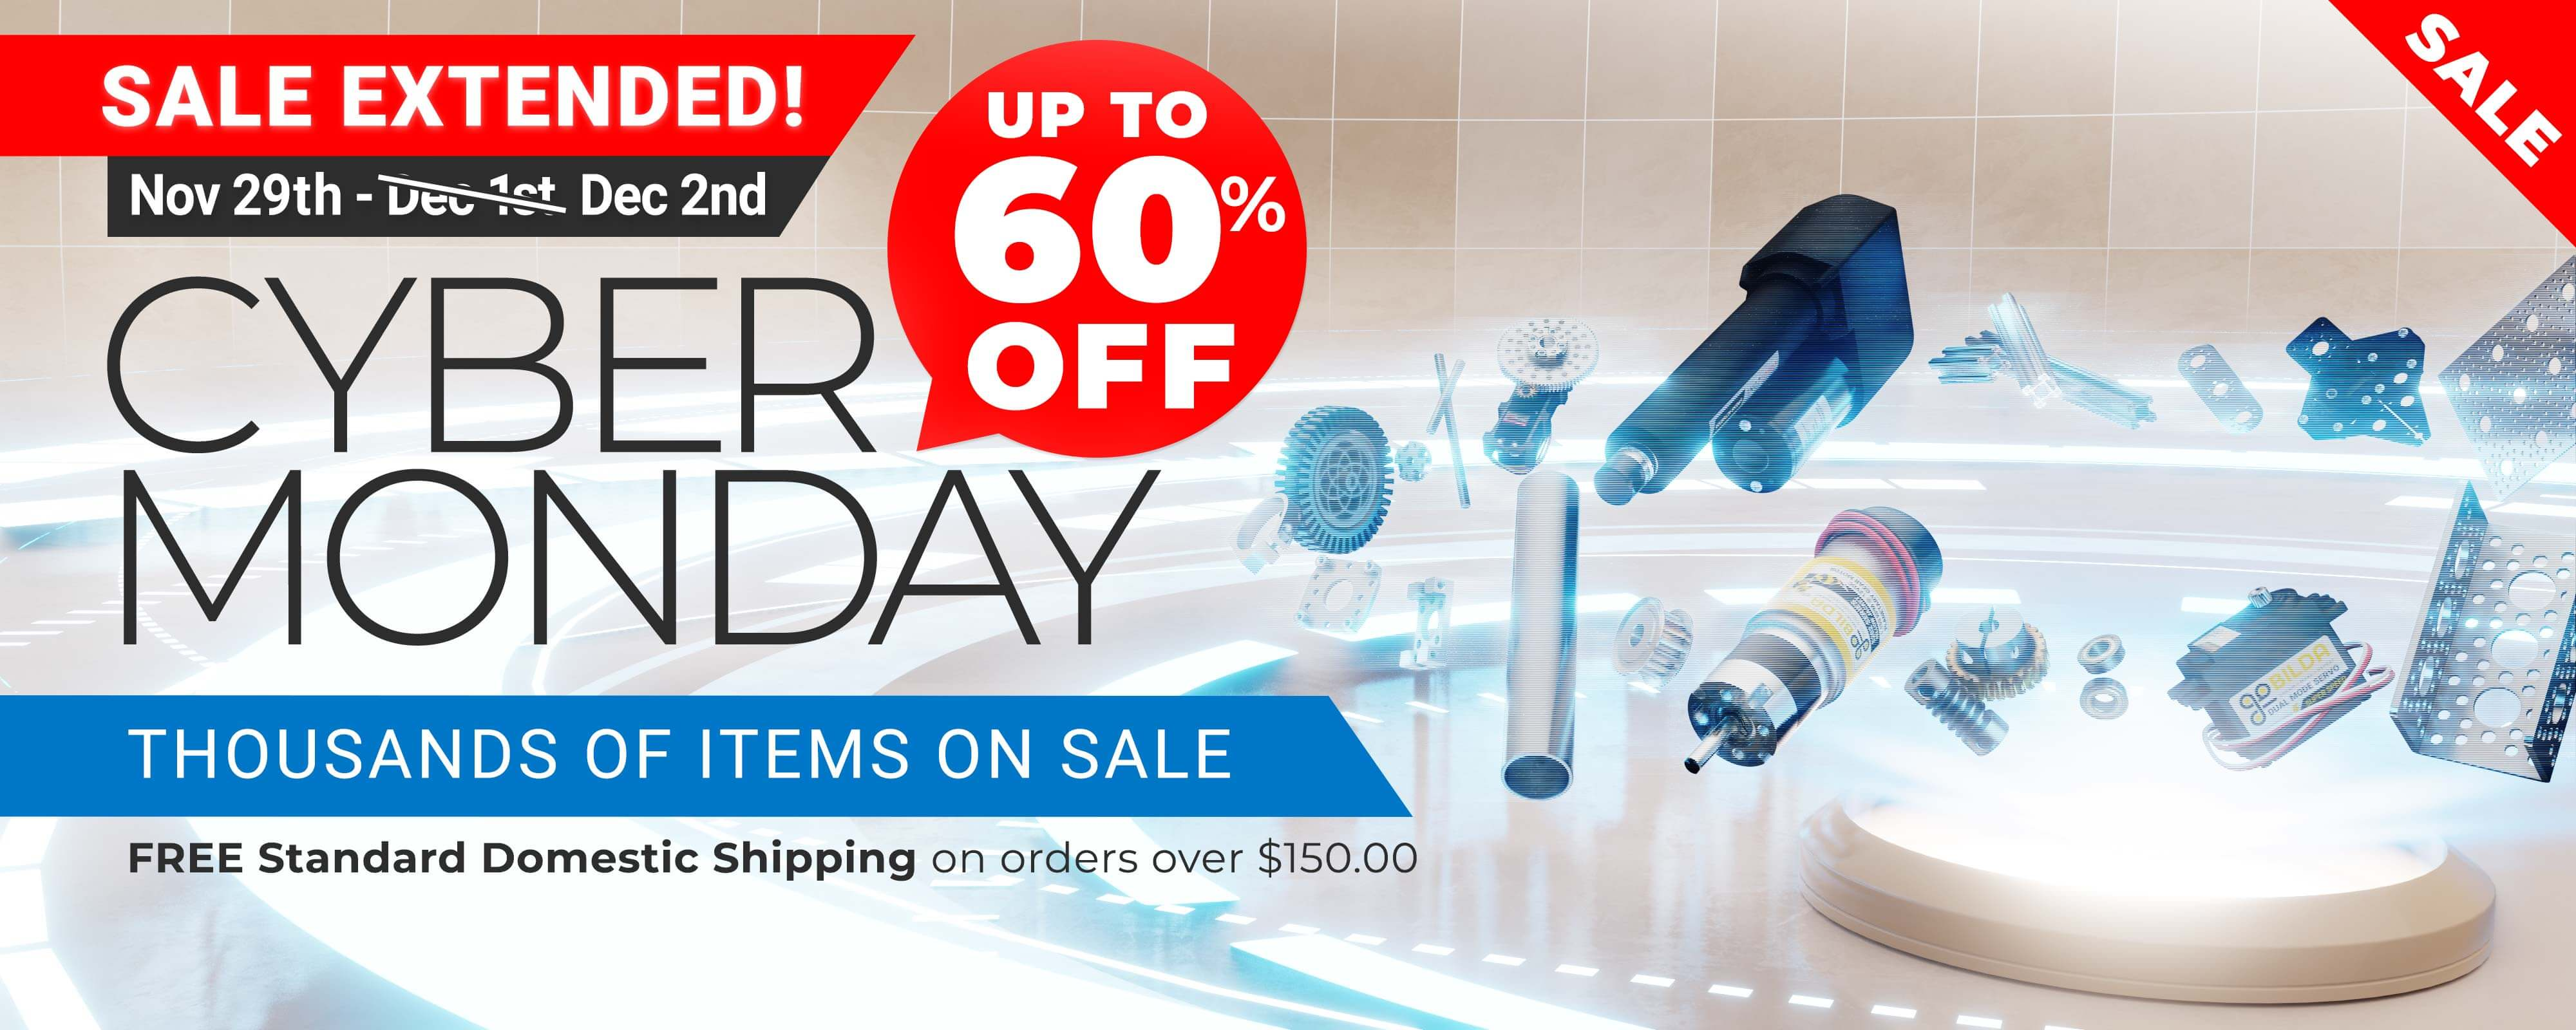 CyberMonday-SC_4000x1600_Sale-Extended.jpg